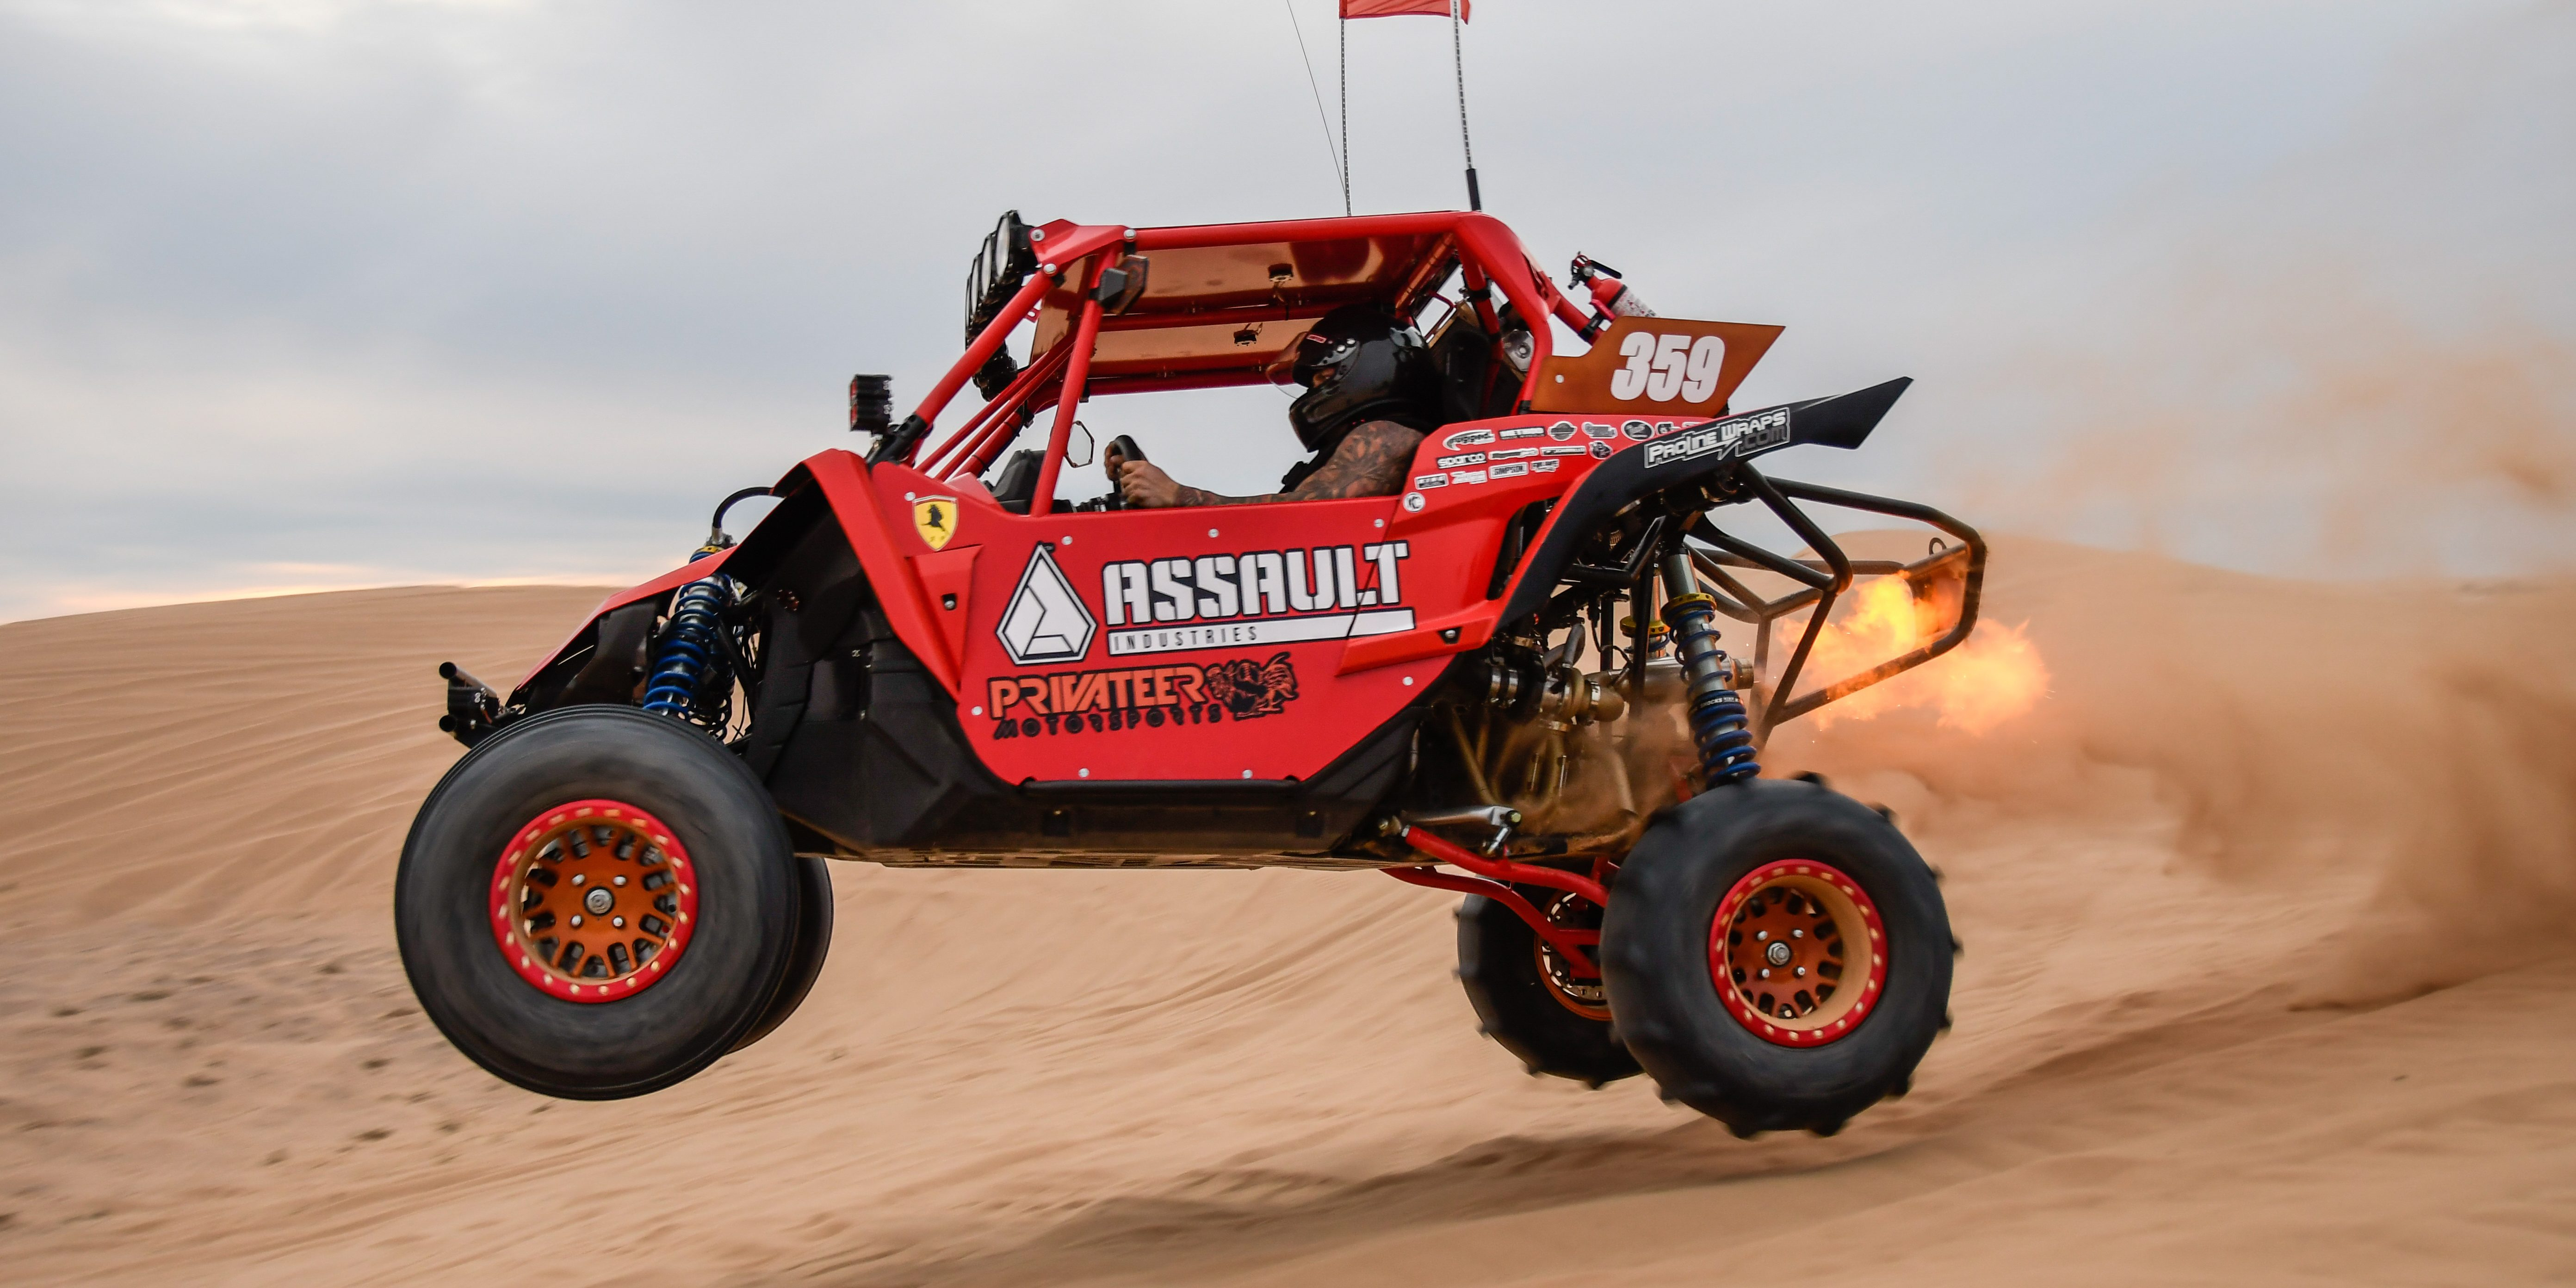 Performance overload privateer motorsports assault for Yamaha yxz1000r turbo